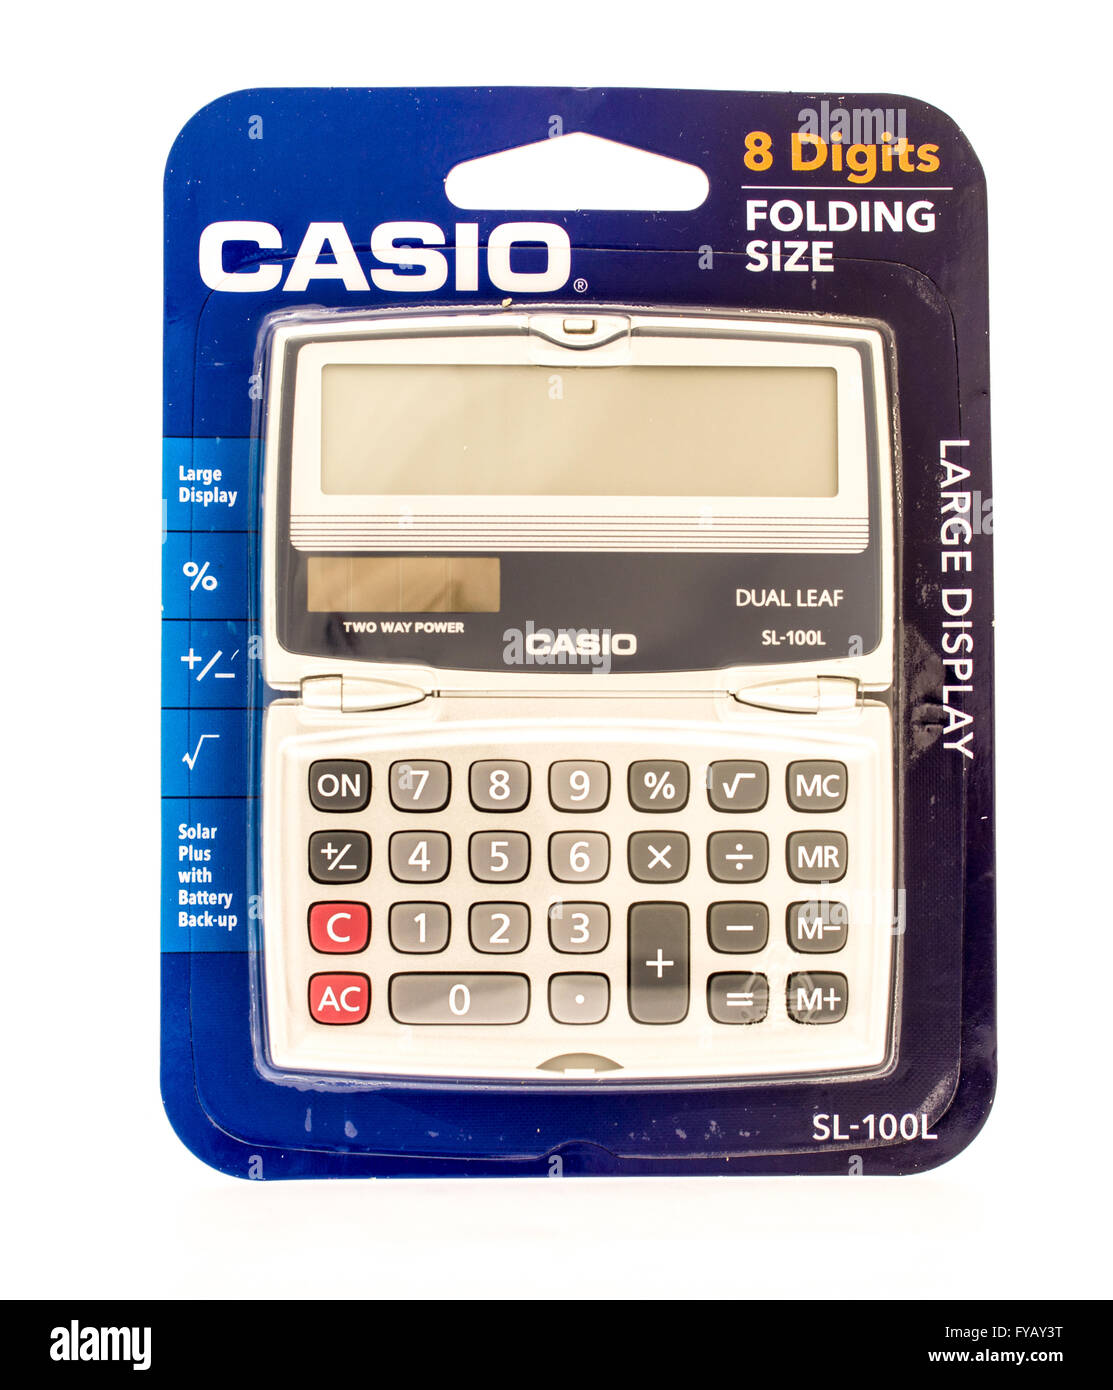 Winneconne, WI - 9 Sept 2015:  Package of a Casio calculatar - Stock Image